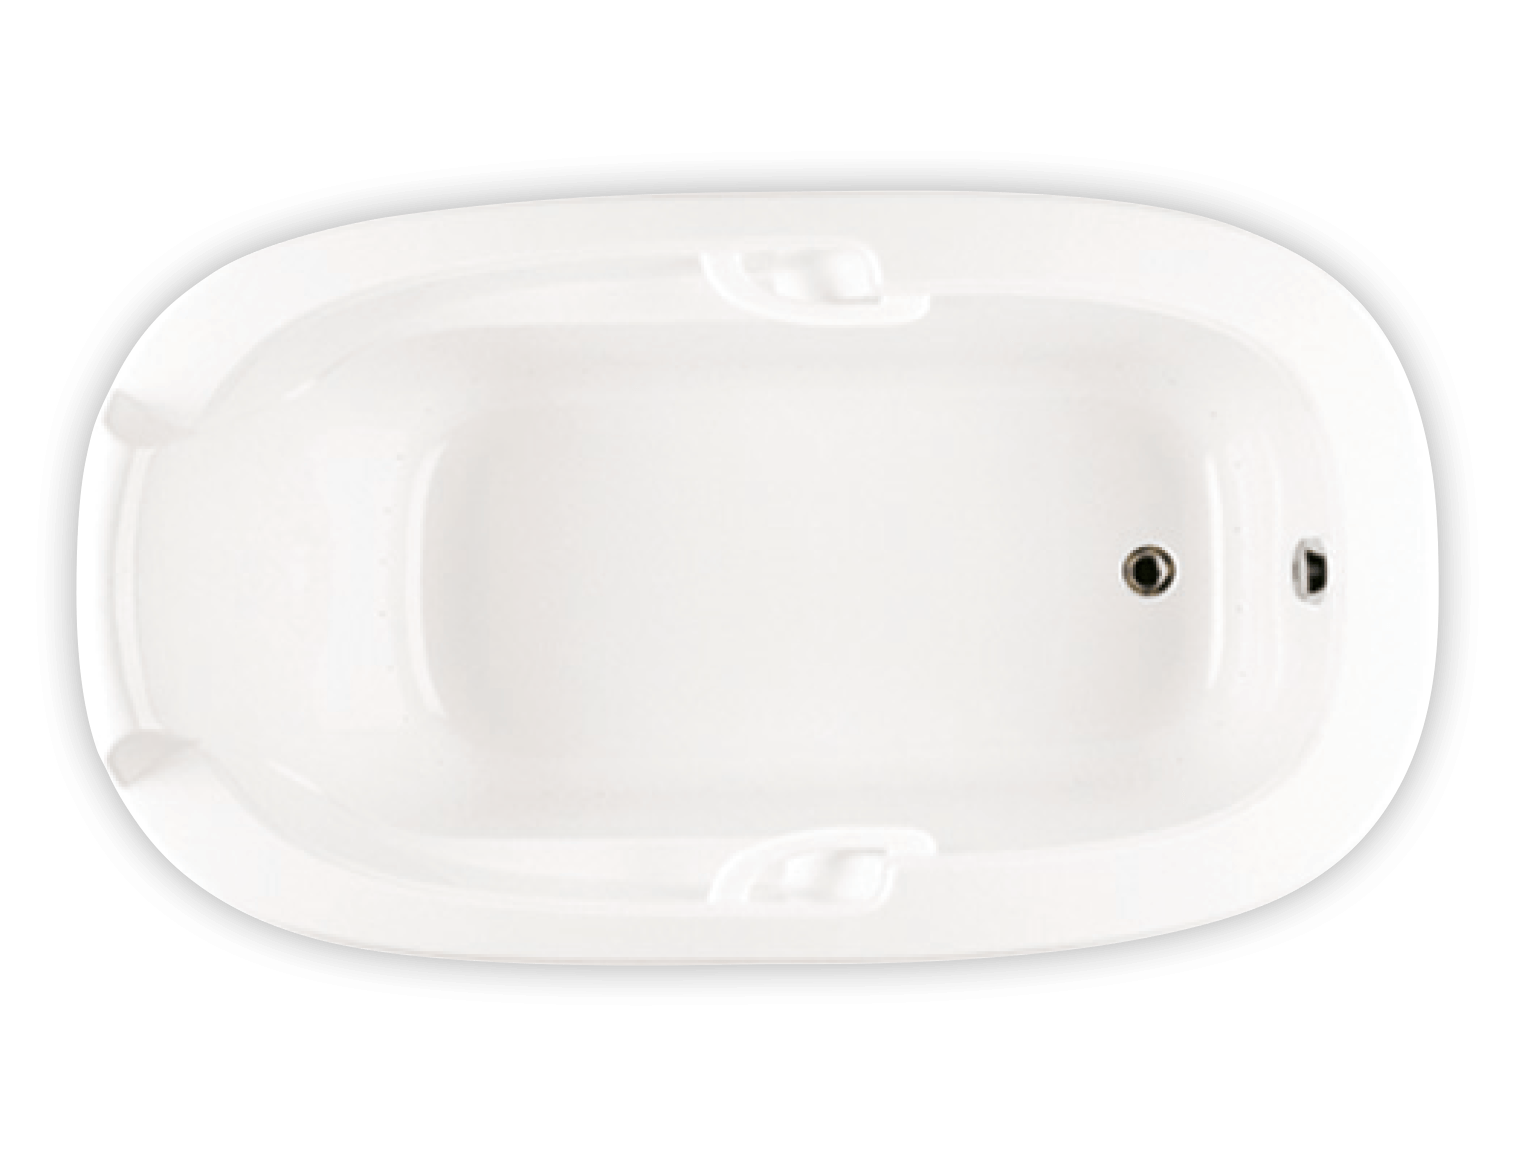 Bainultra Oval Plus drop-in air jet bathtub for your modern bathroom